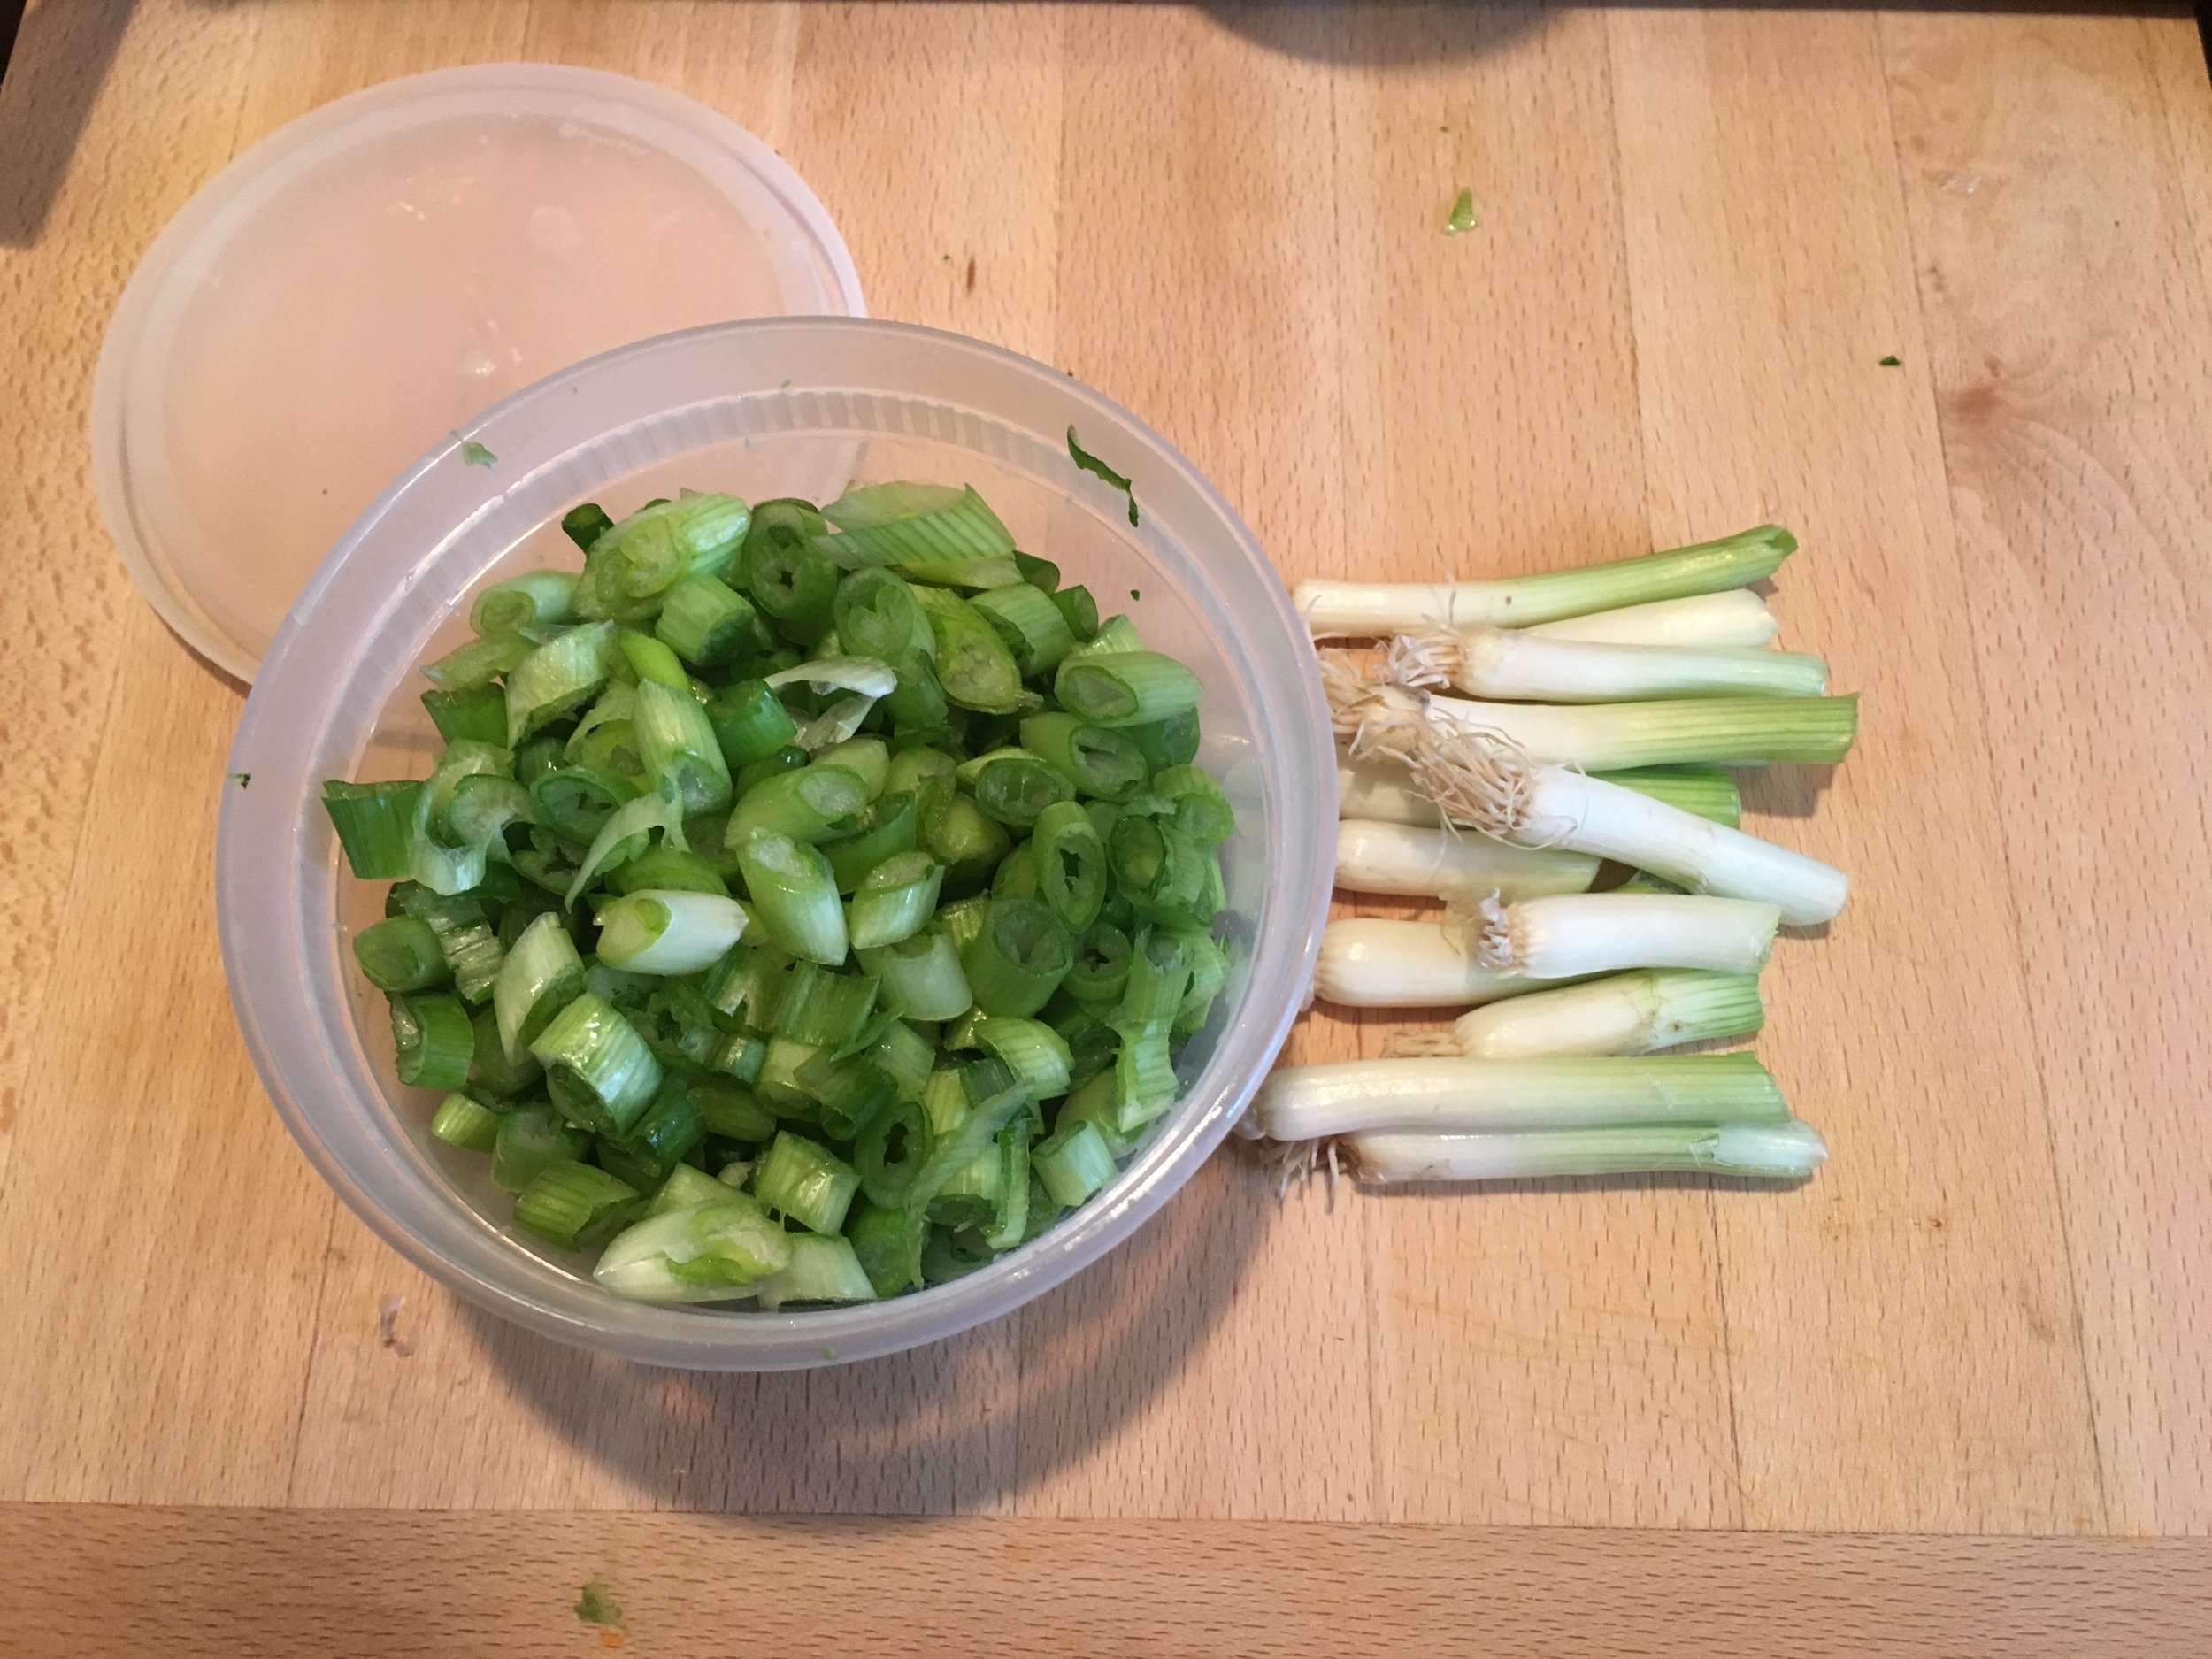 You can even regrow your green onion by putting the white part in a glass with water!